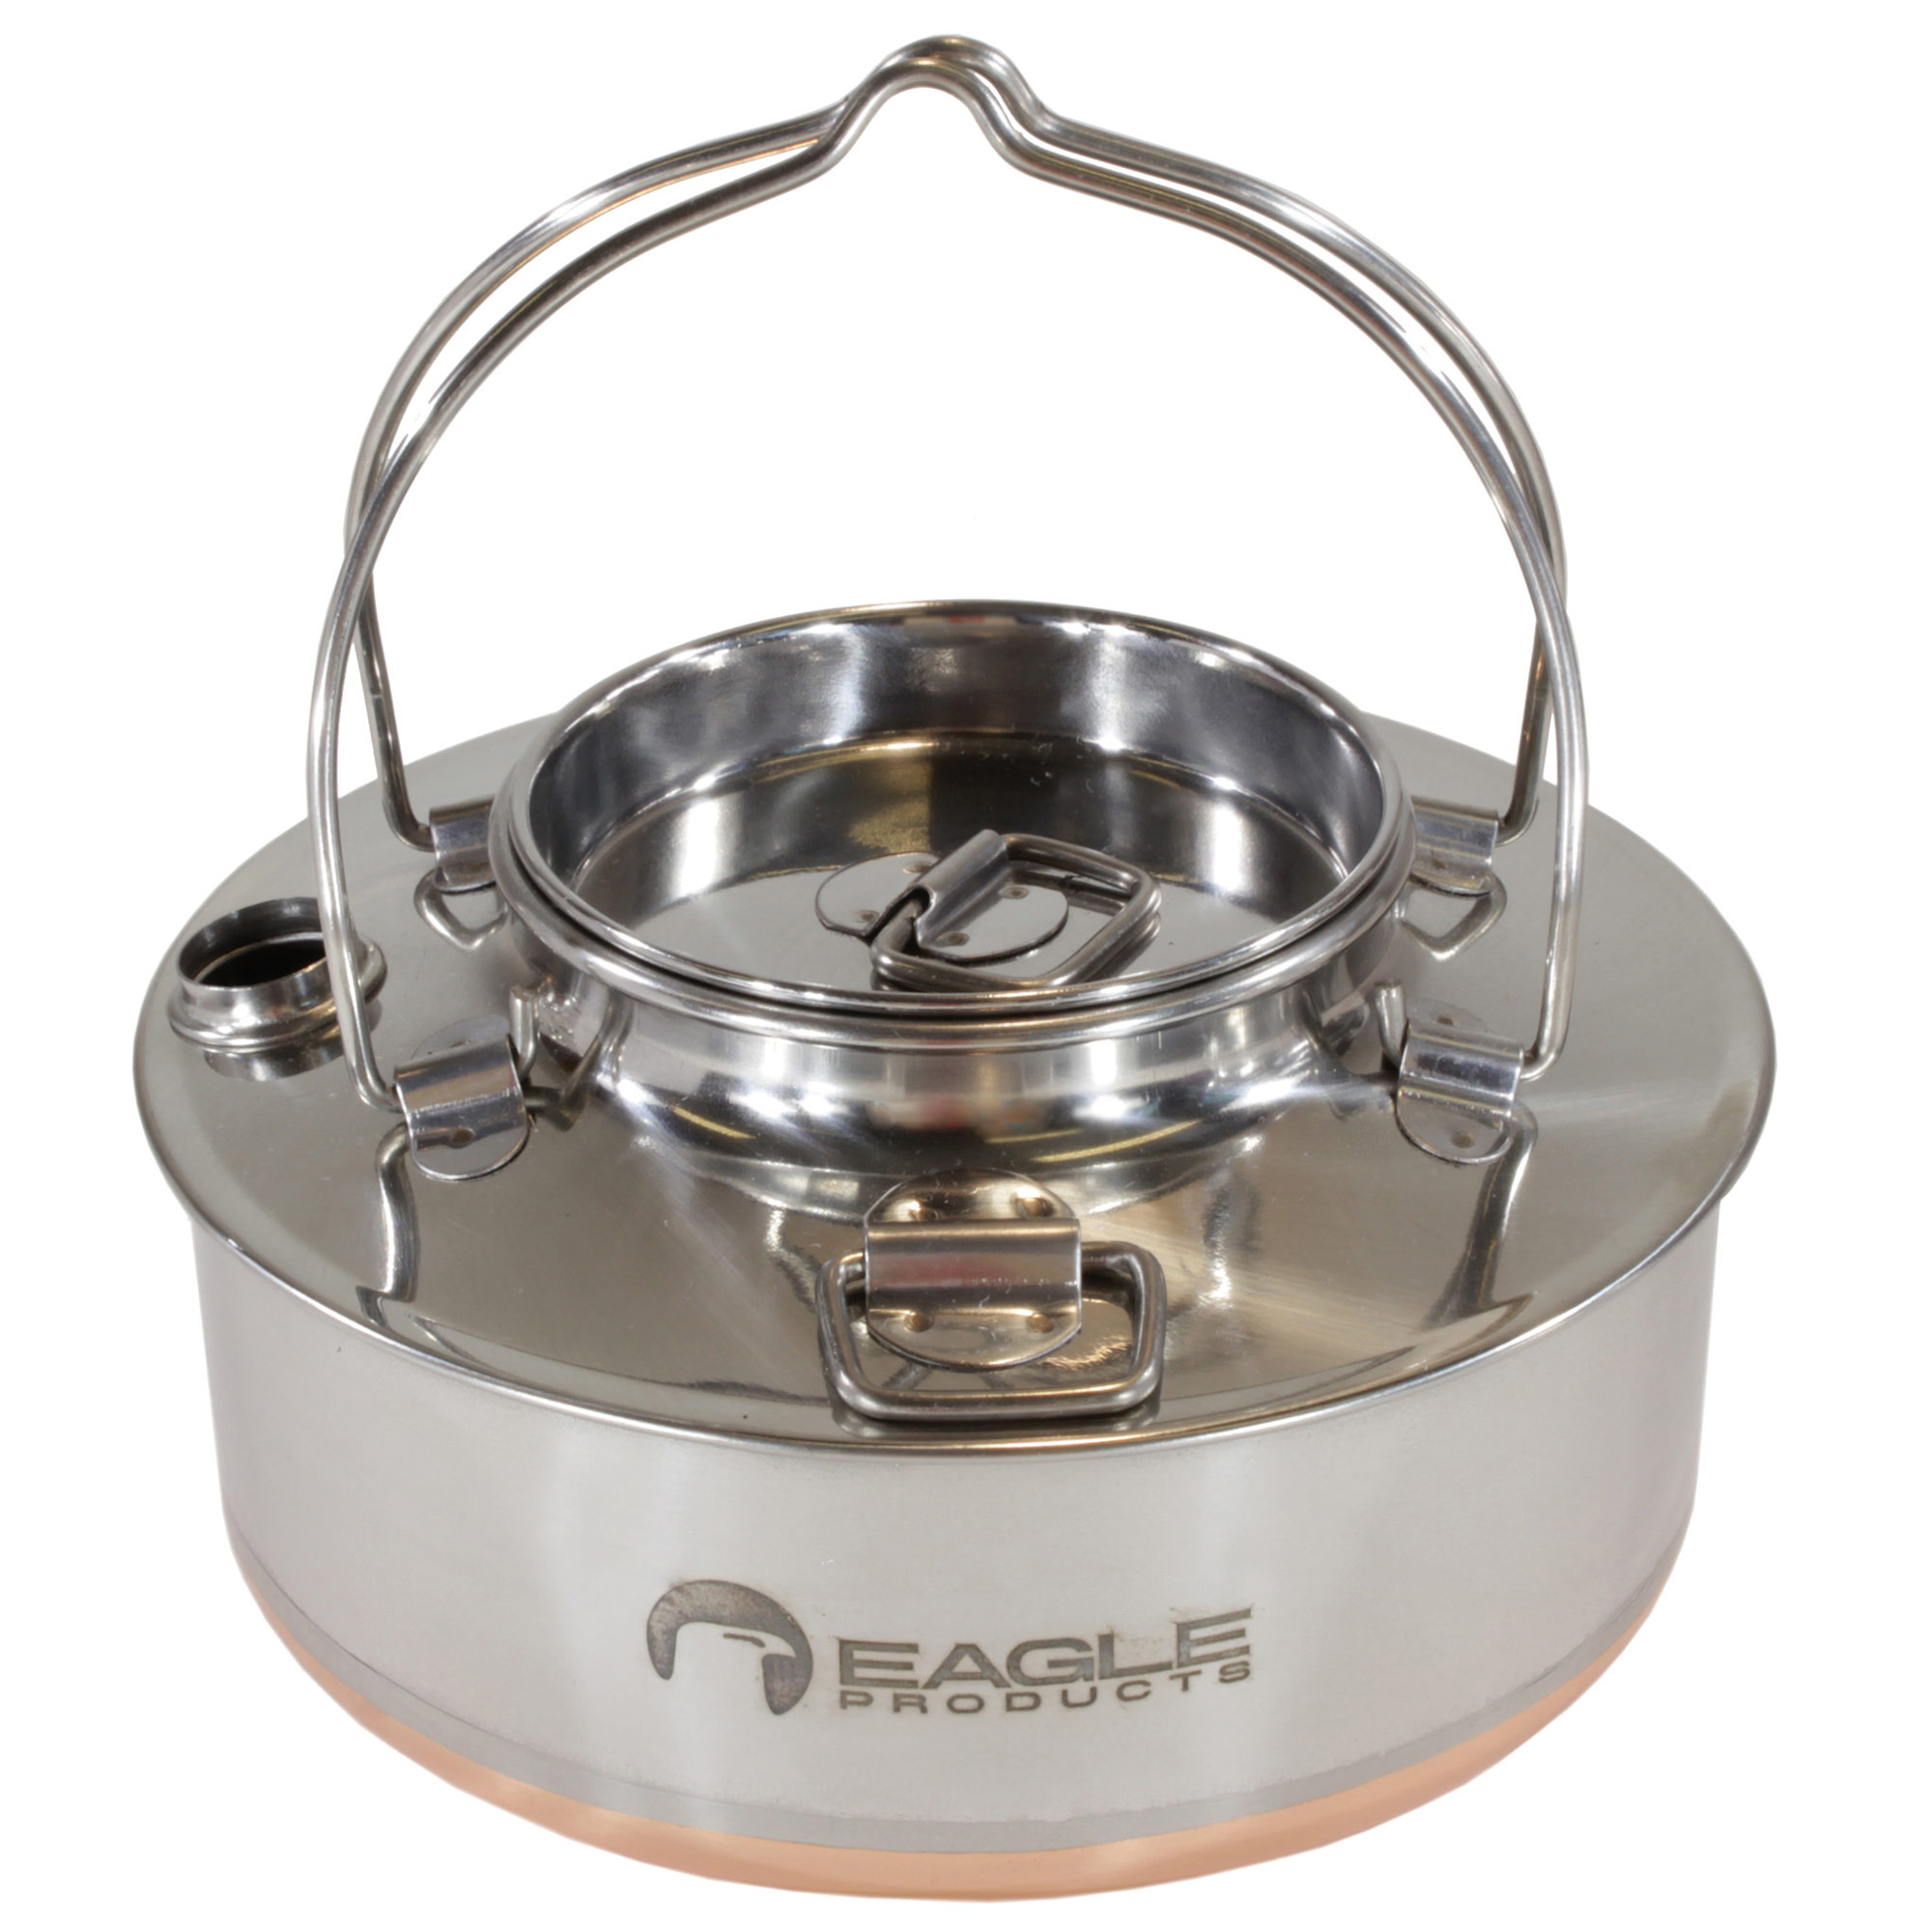 Eagle Products Kettle 0.7 L